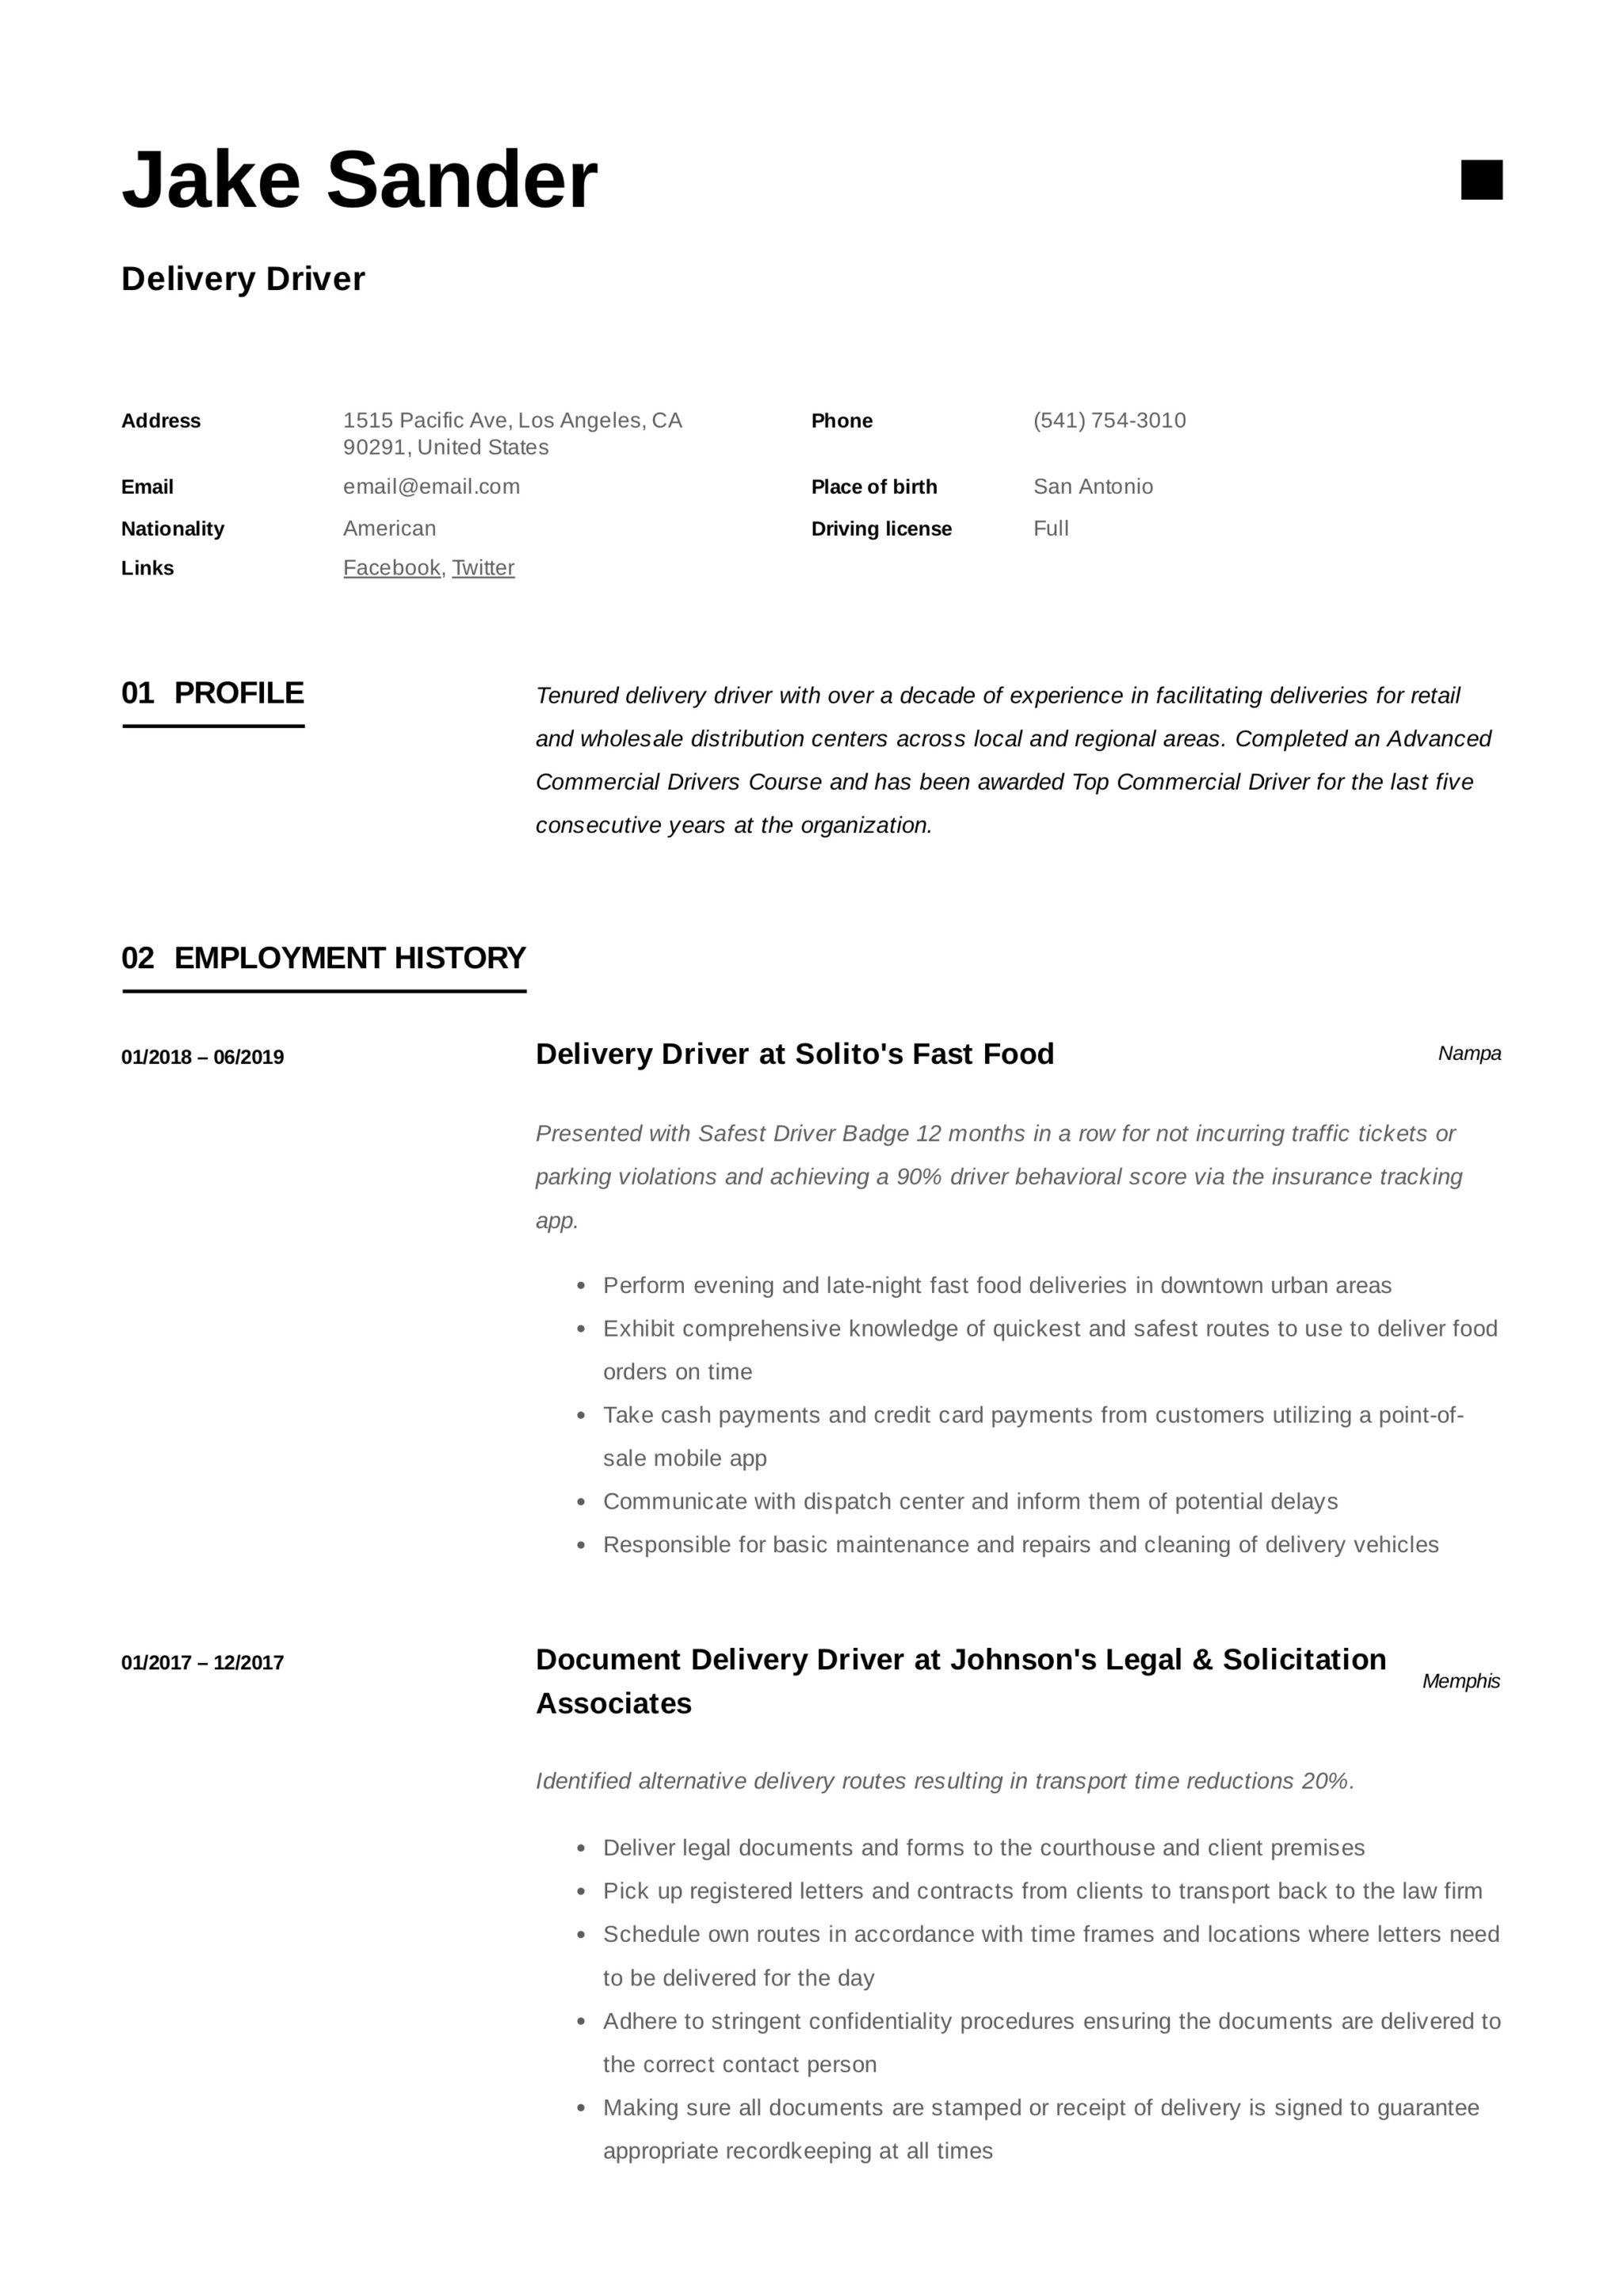 Resume Template Delivery Driver